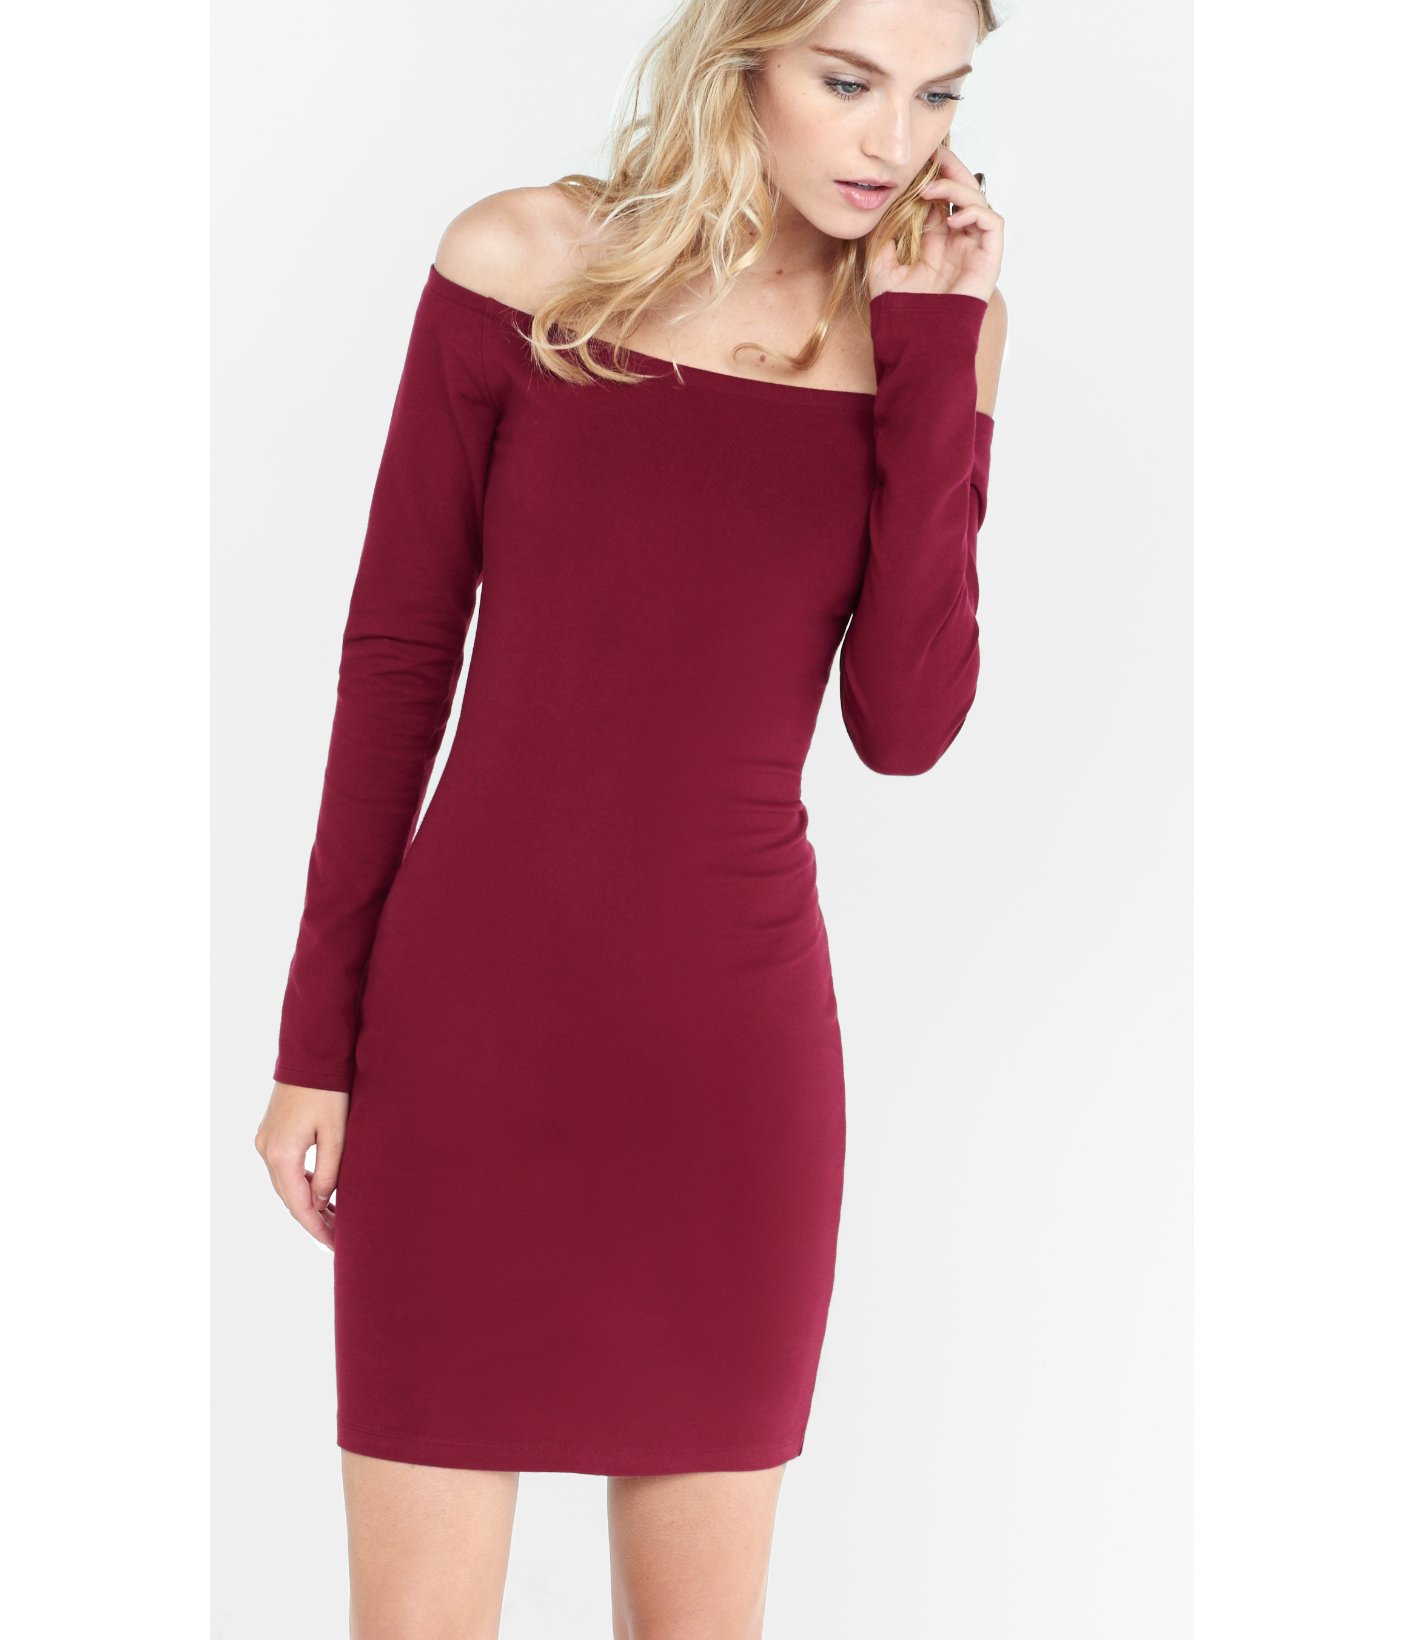 fdca161176f4 Express Berry Fitted Off The Shoulder Dress in Purple - Lyst